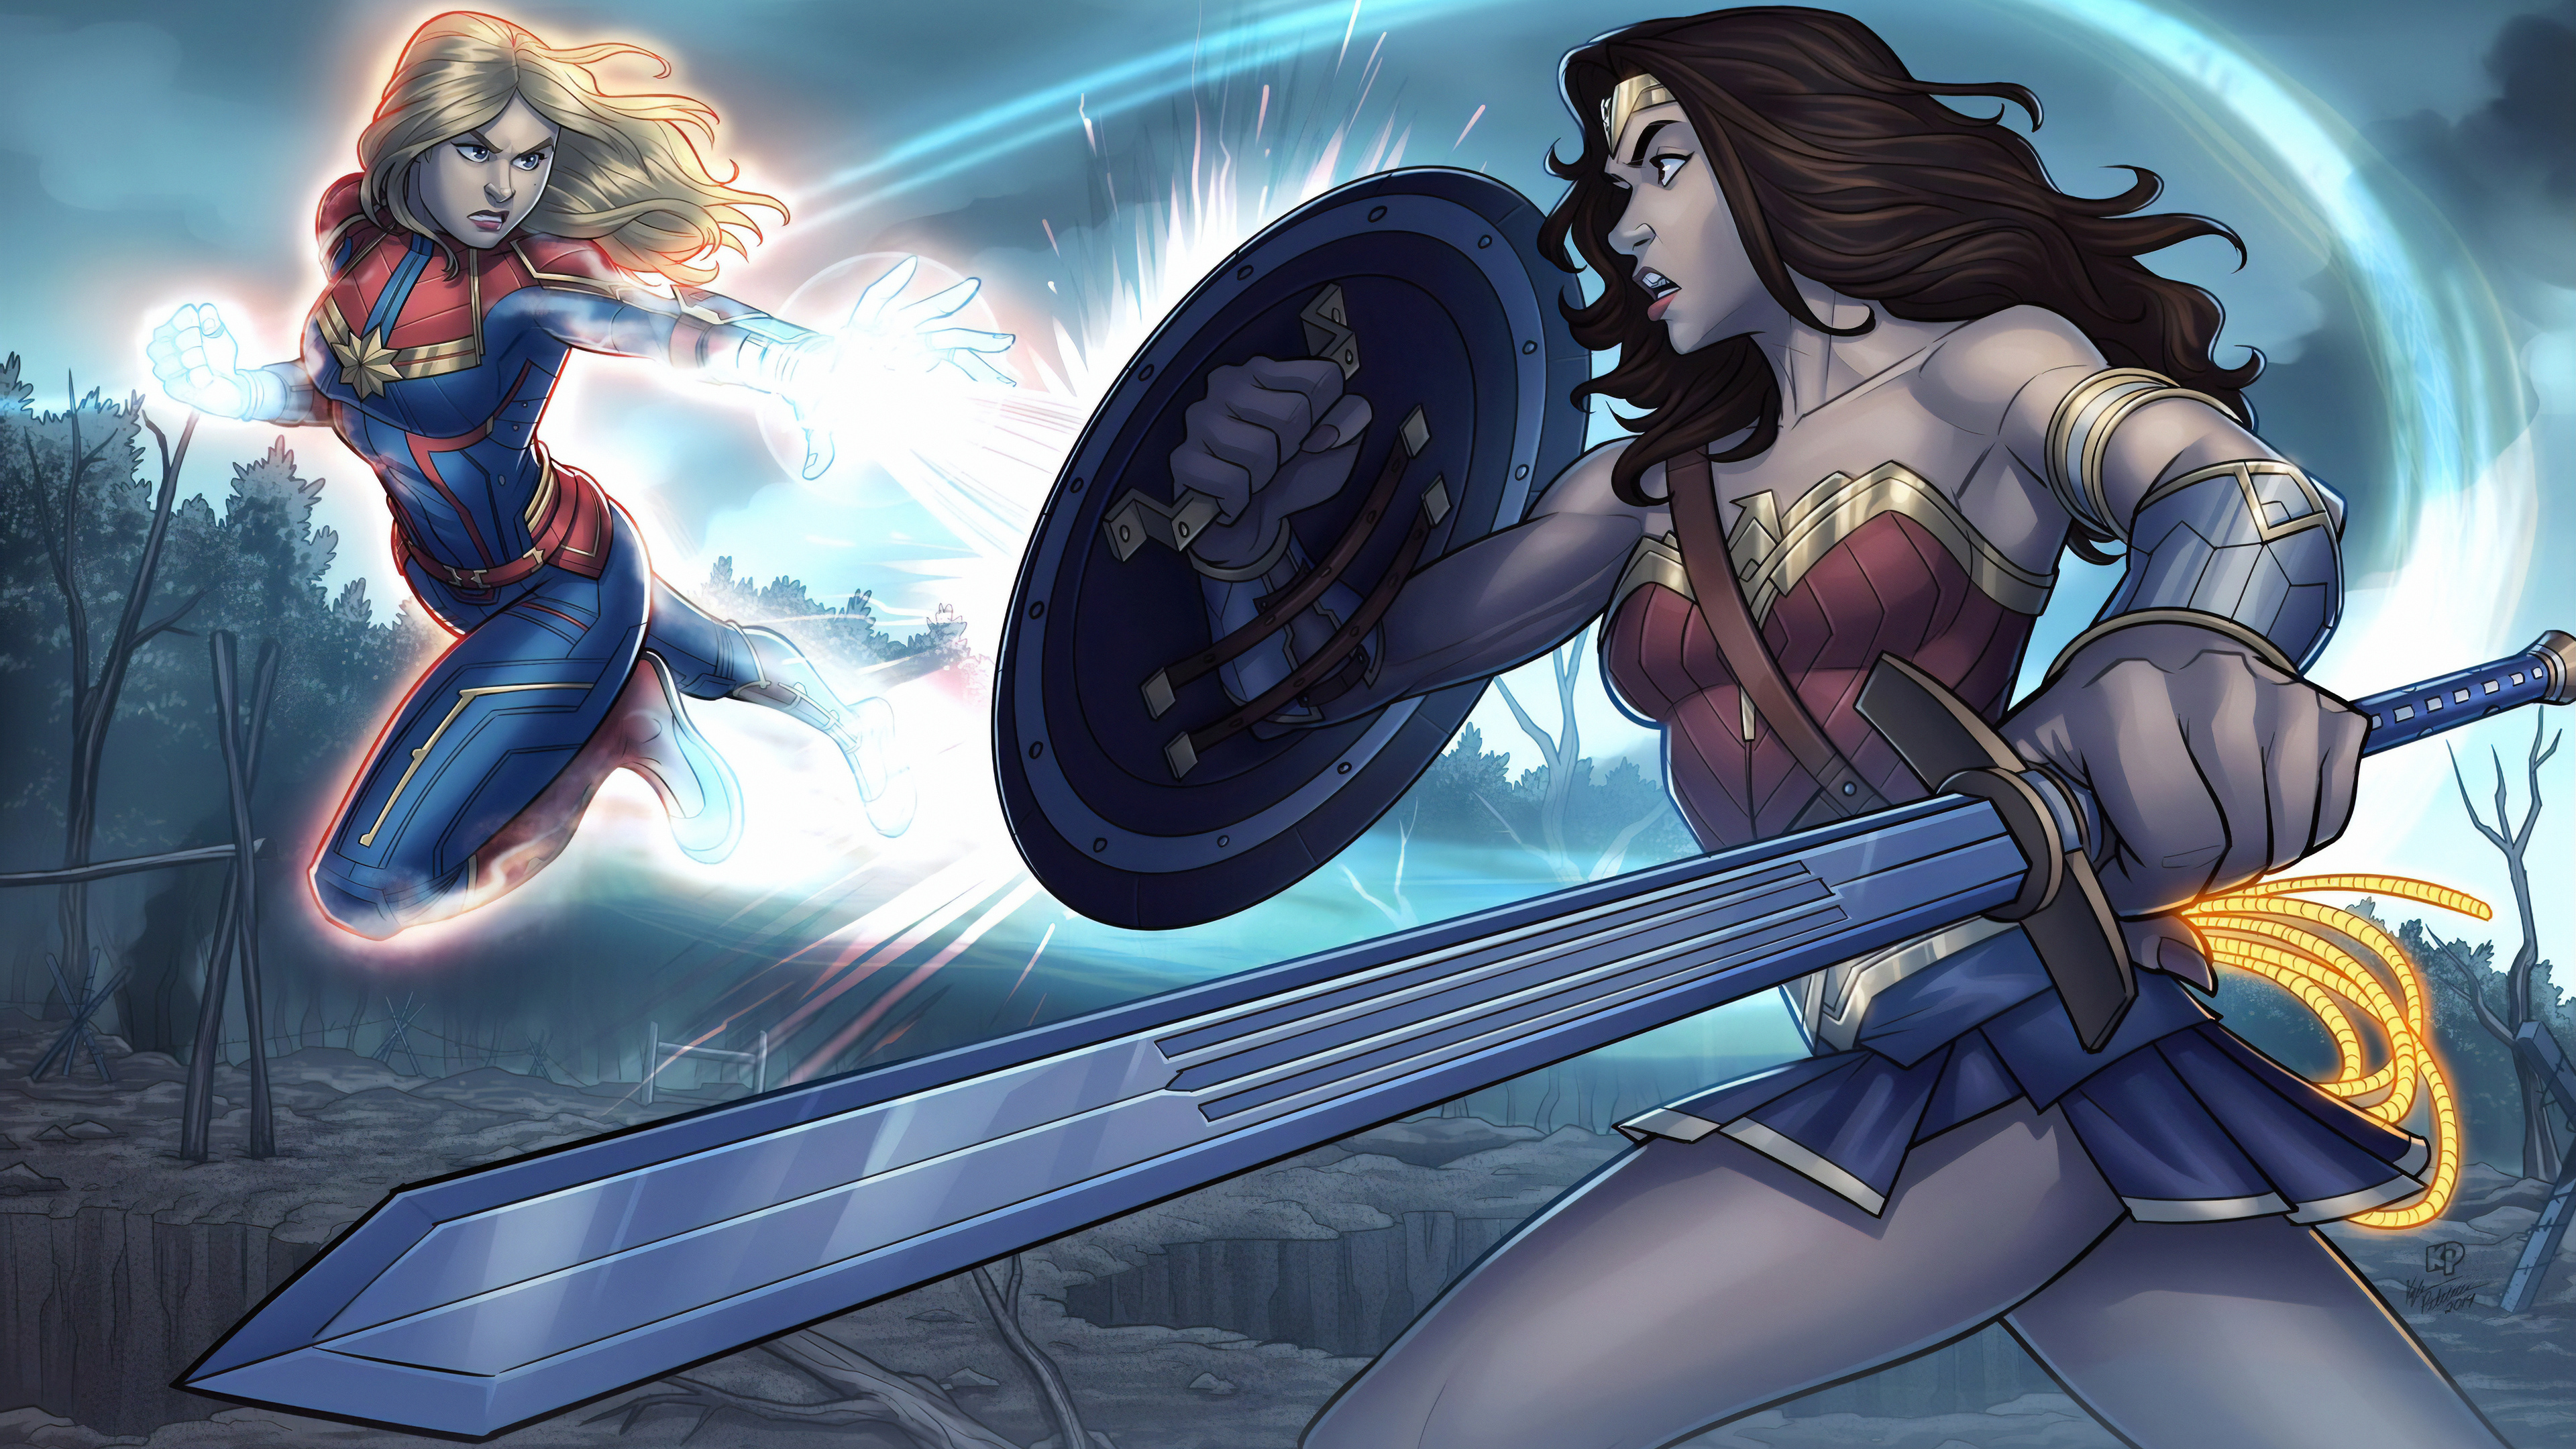 wonder woman and captain marvel 1570394314 - Wonder Woman And Captain Marvel - wonder woman wallpapers, superheroes wallpapers, hd-wallpapers, artwork wallpapers, art wallpapers, 4k-wallpapers